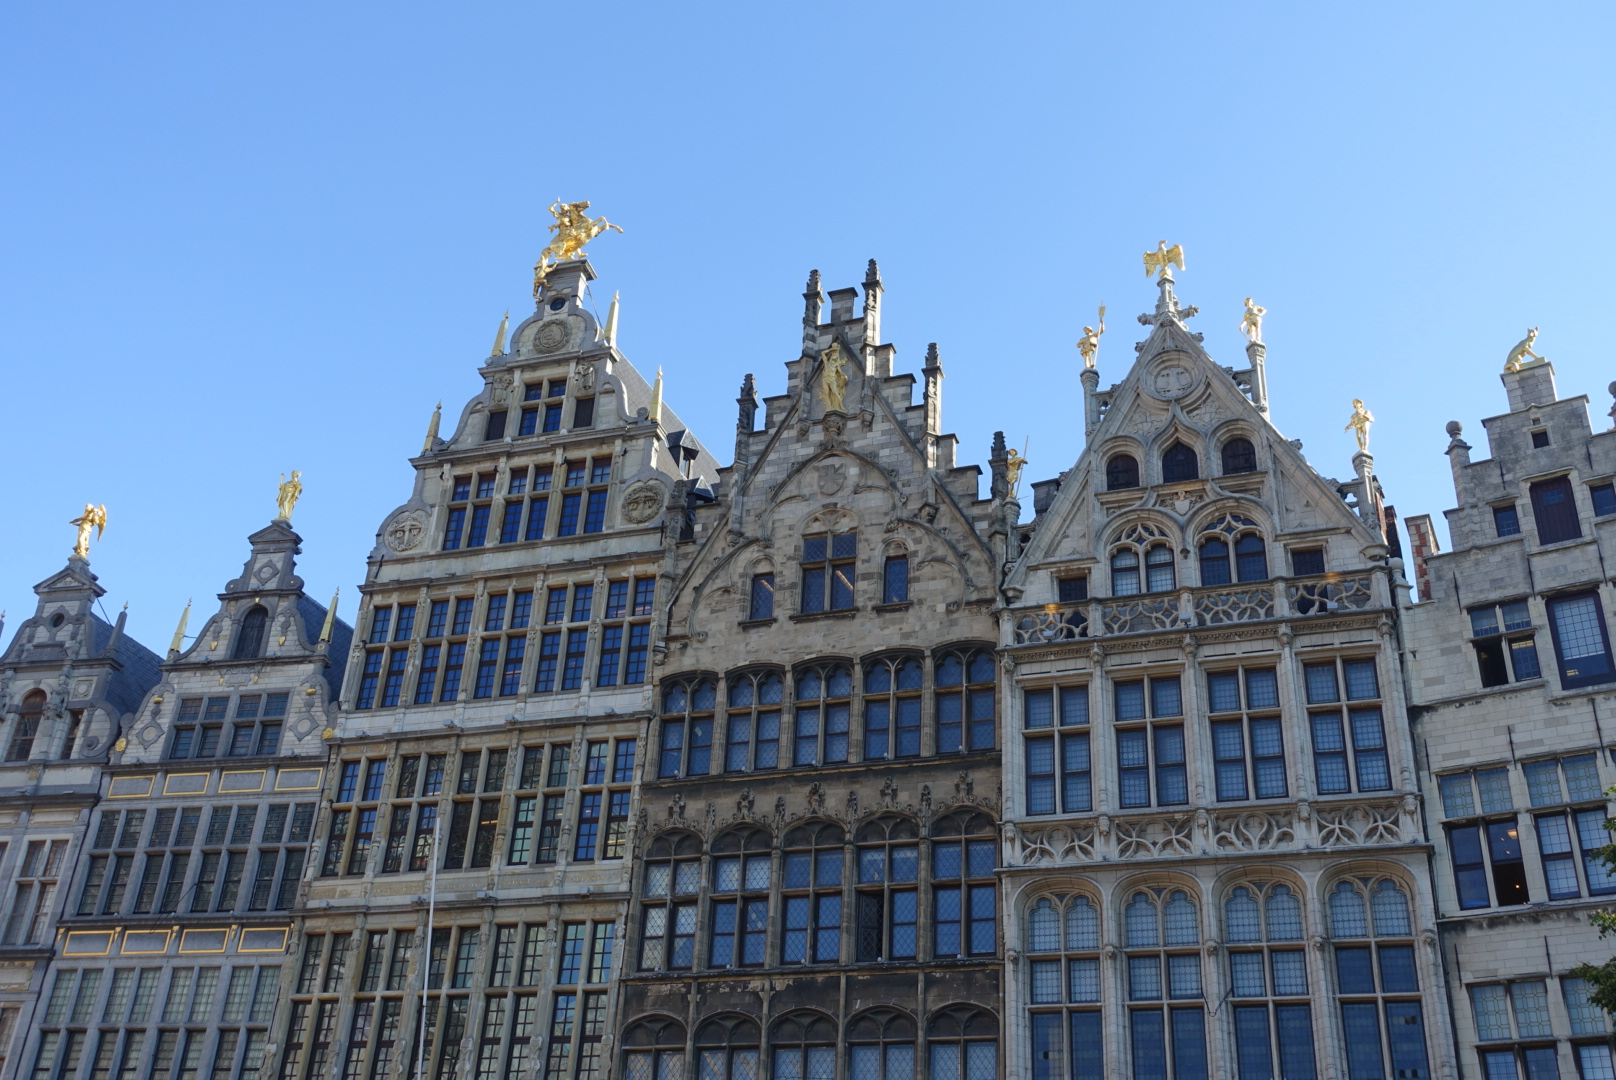 The beautiful architecture on the 'Grote Markt'